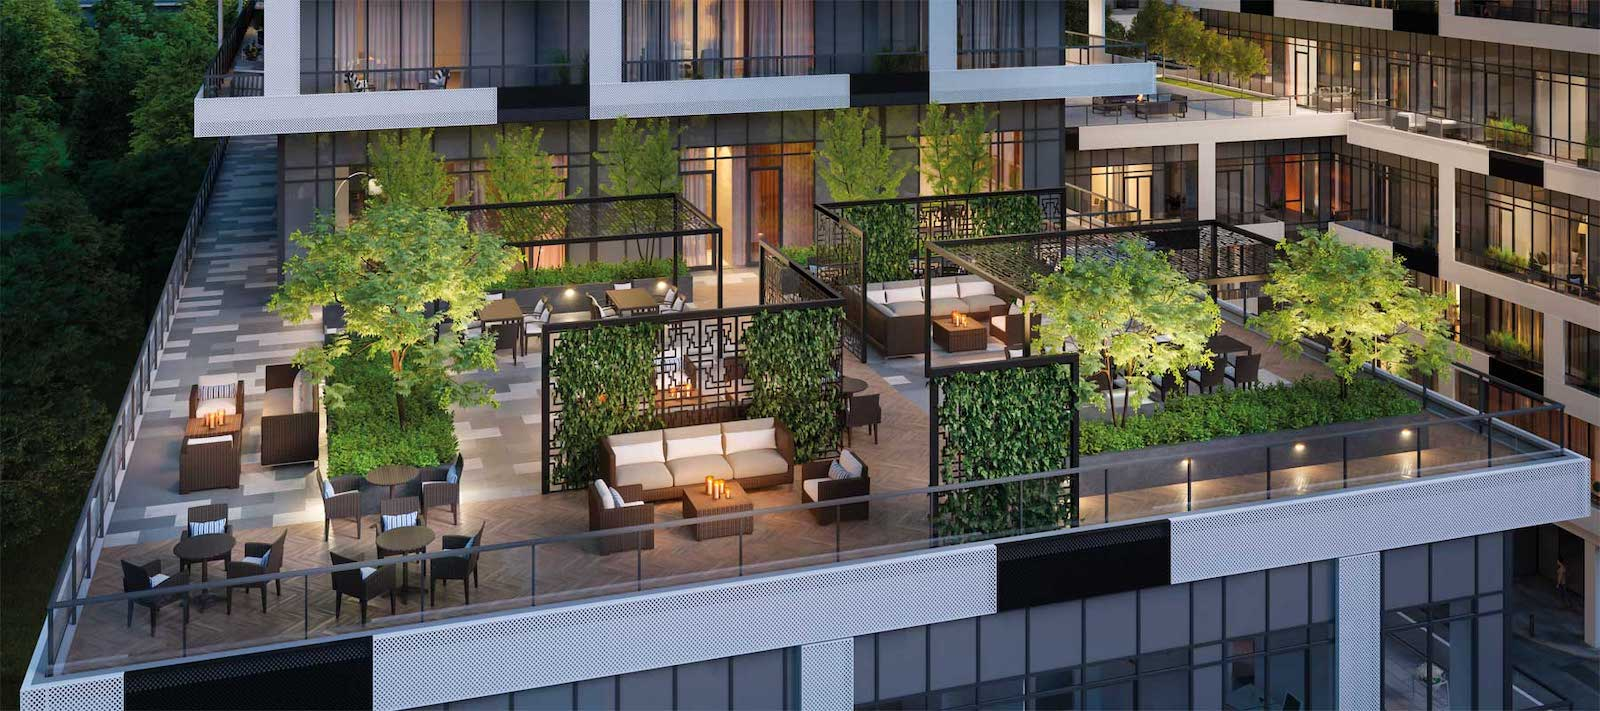 Exterior rendering of Sixty-Five Broadway Condos rooftop terrace in the evening.